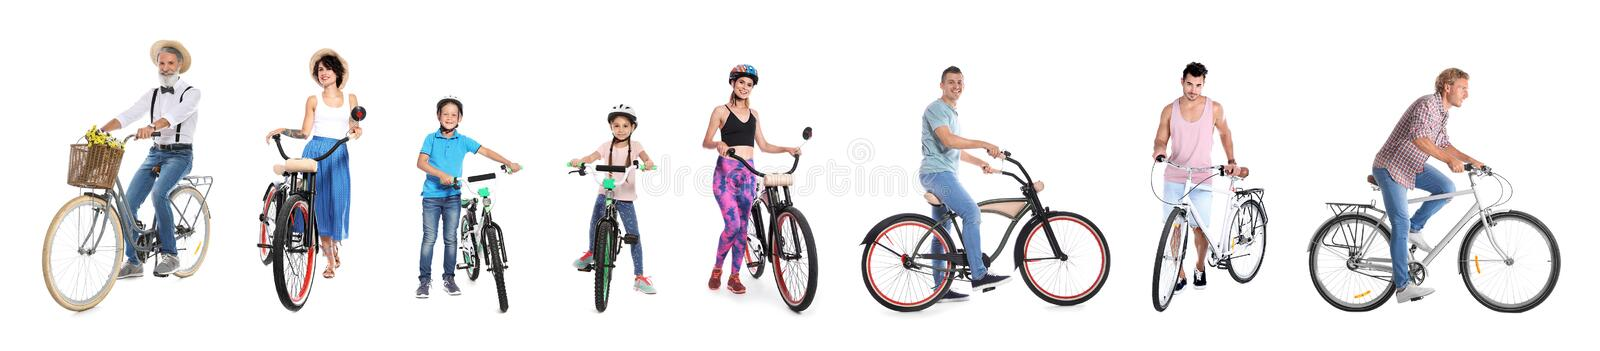 Collage of people with bicycles on white royalty free stock photos